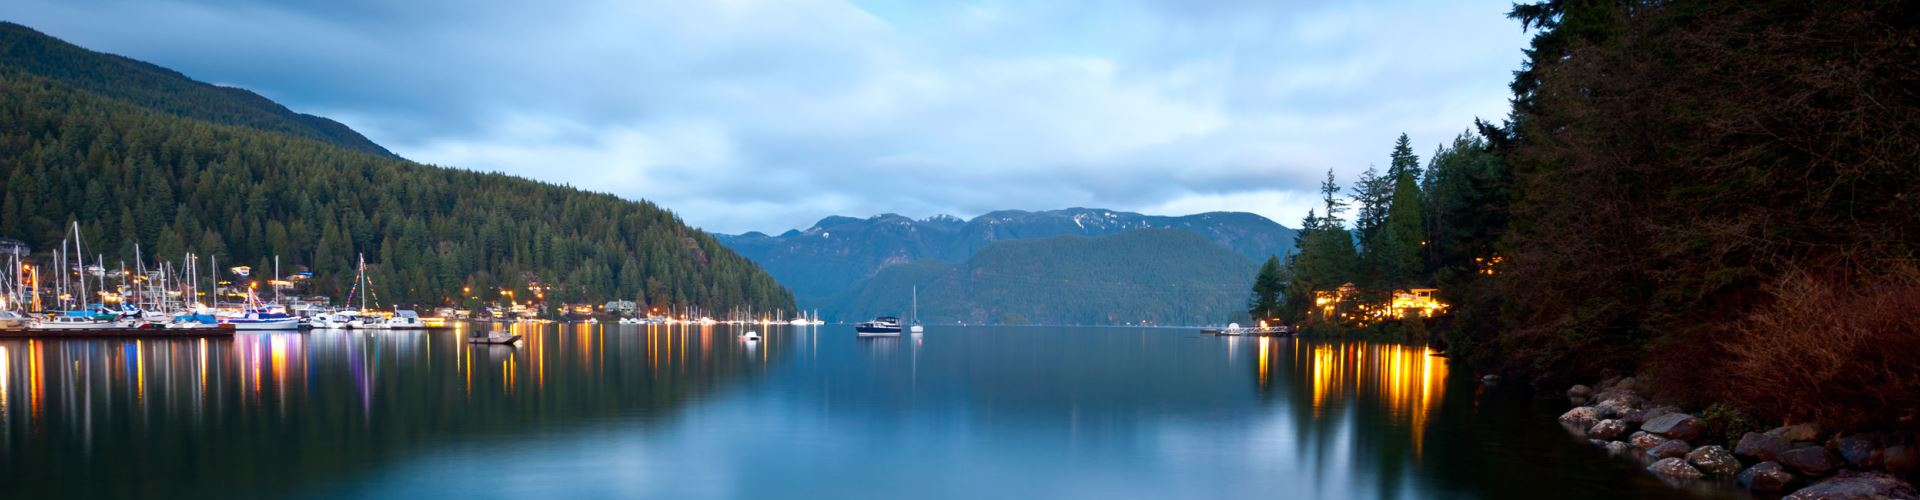 Pleasing Deep Cove Real Estate Homes Waterfront Houses And Condos Home Interior And Landscaping Ologienasavecom